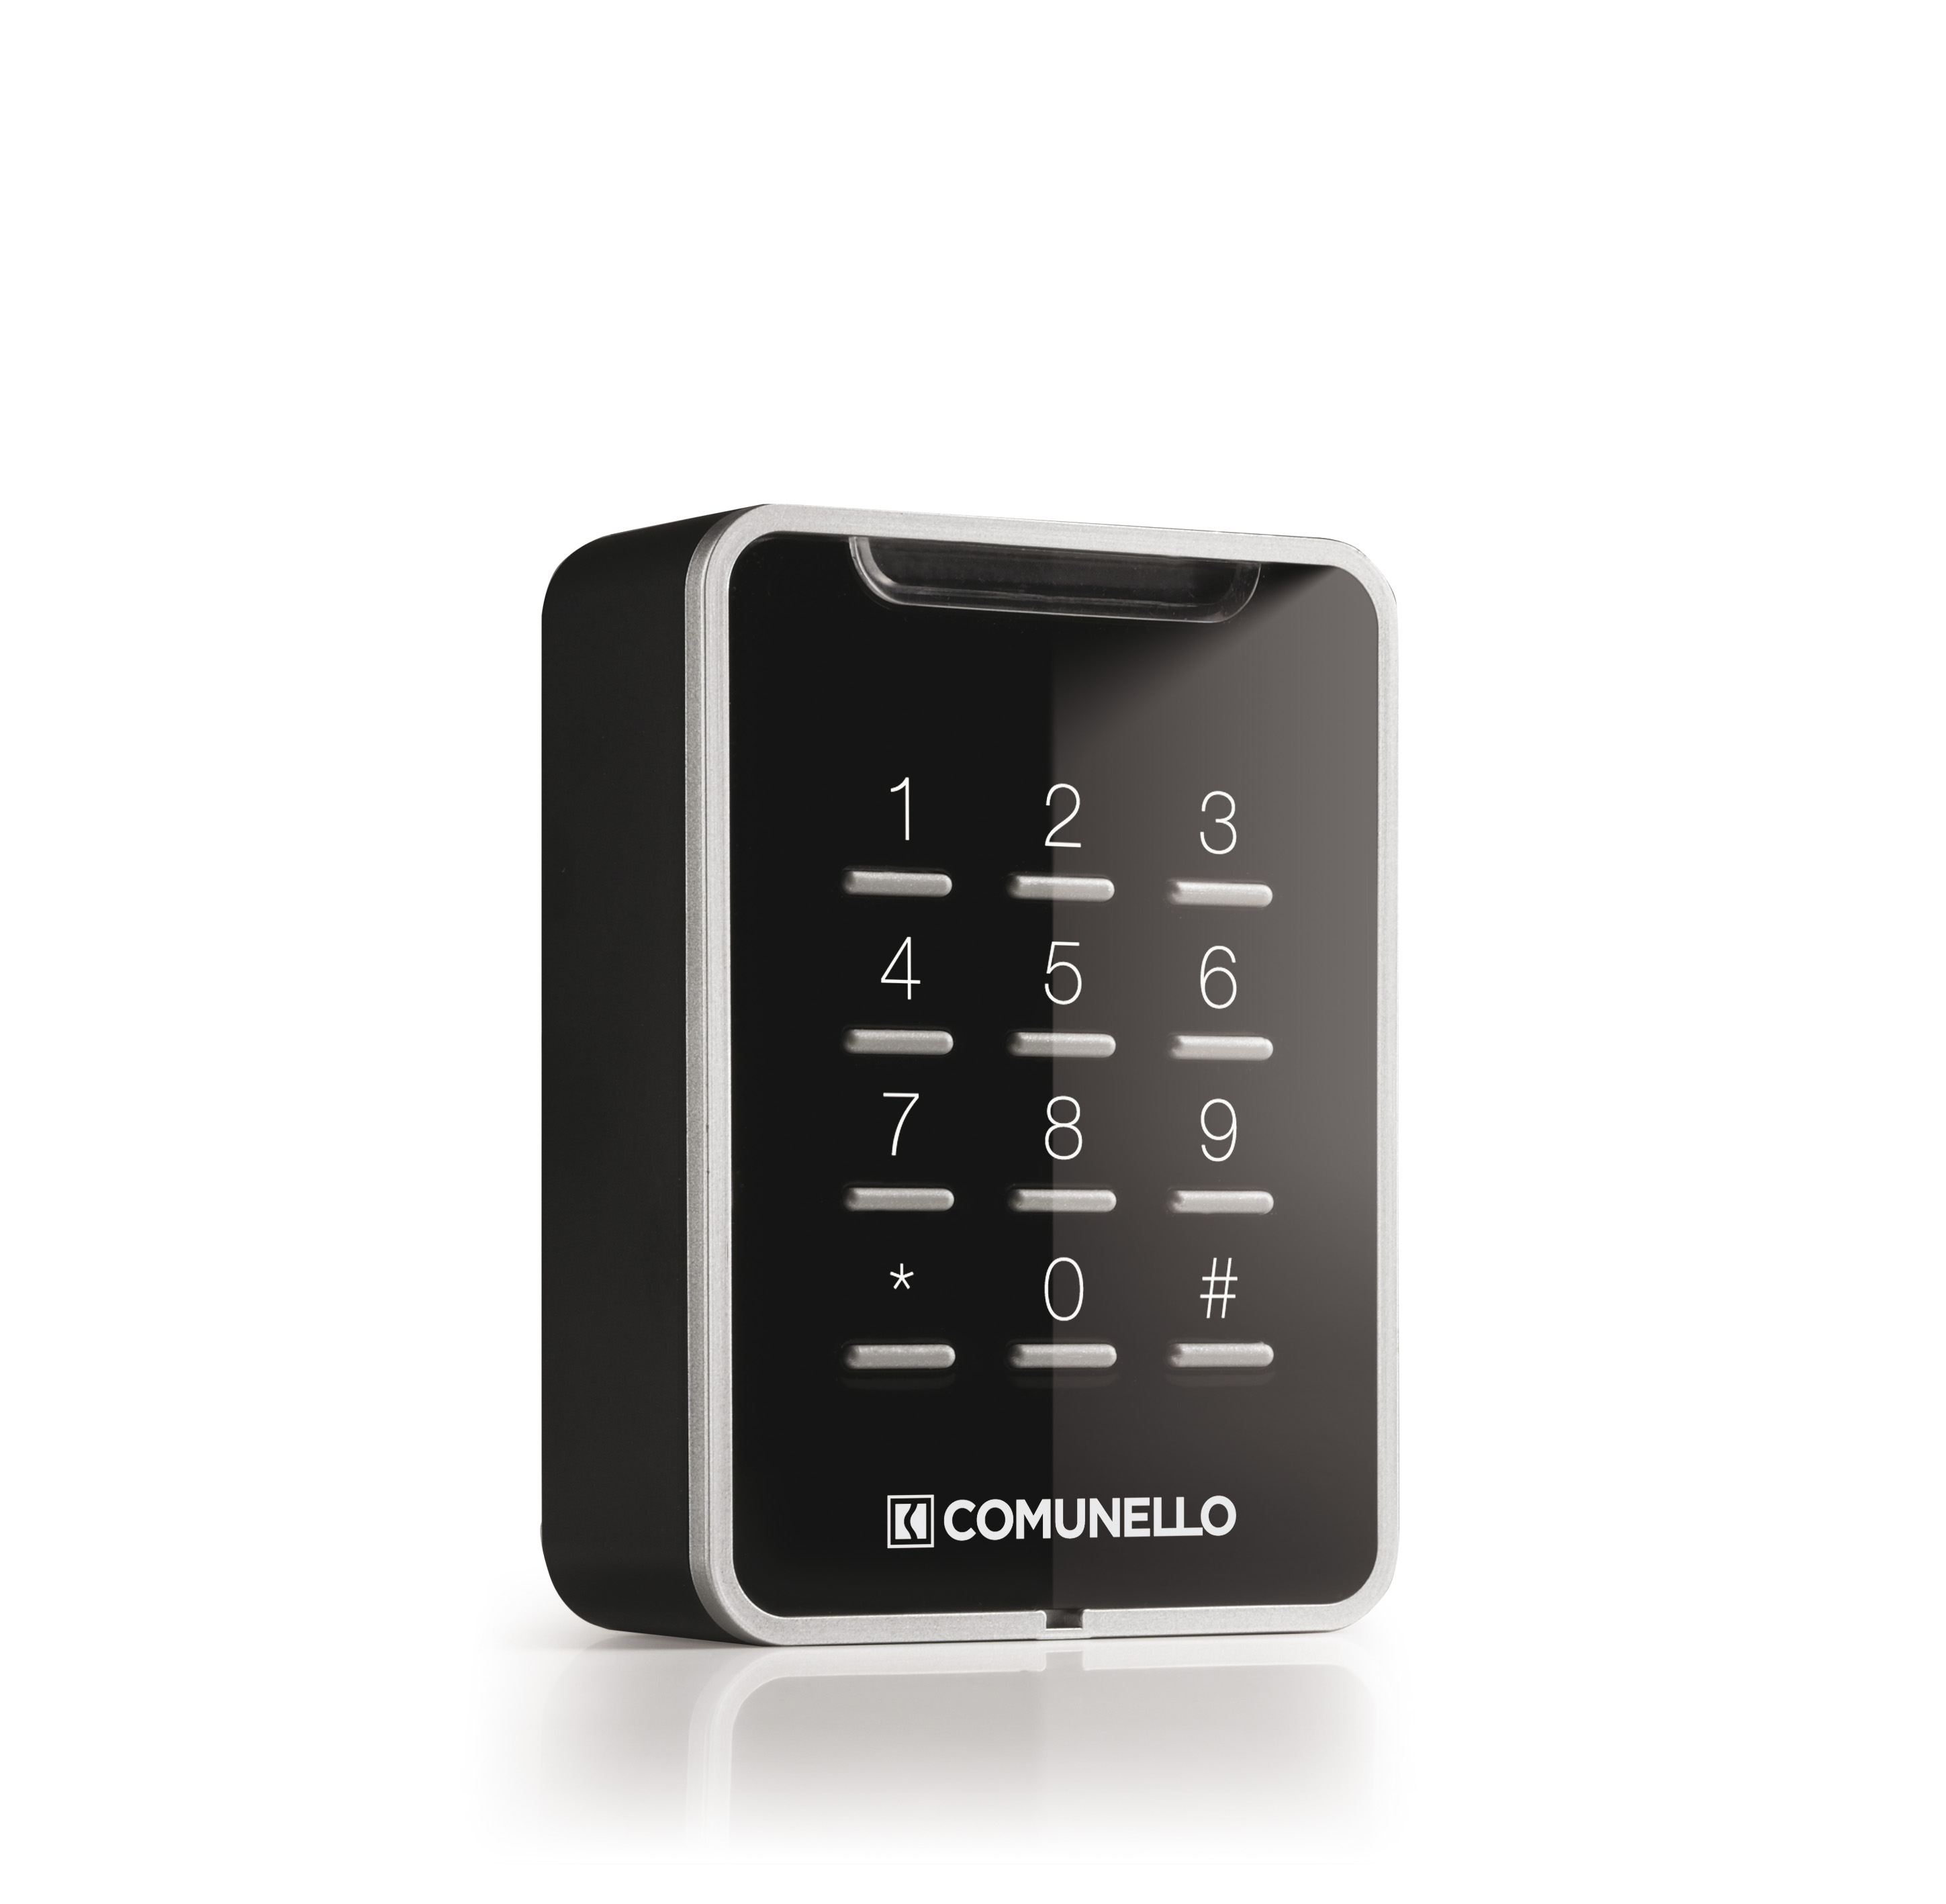 ComunelloAutomation TACT-RADIO / BLACK